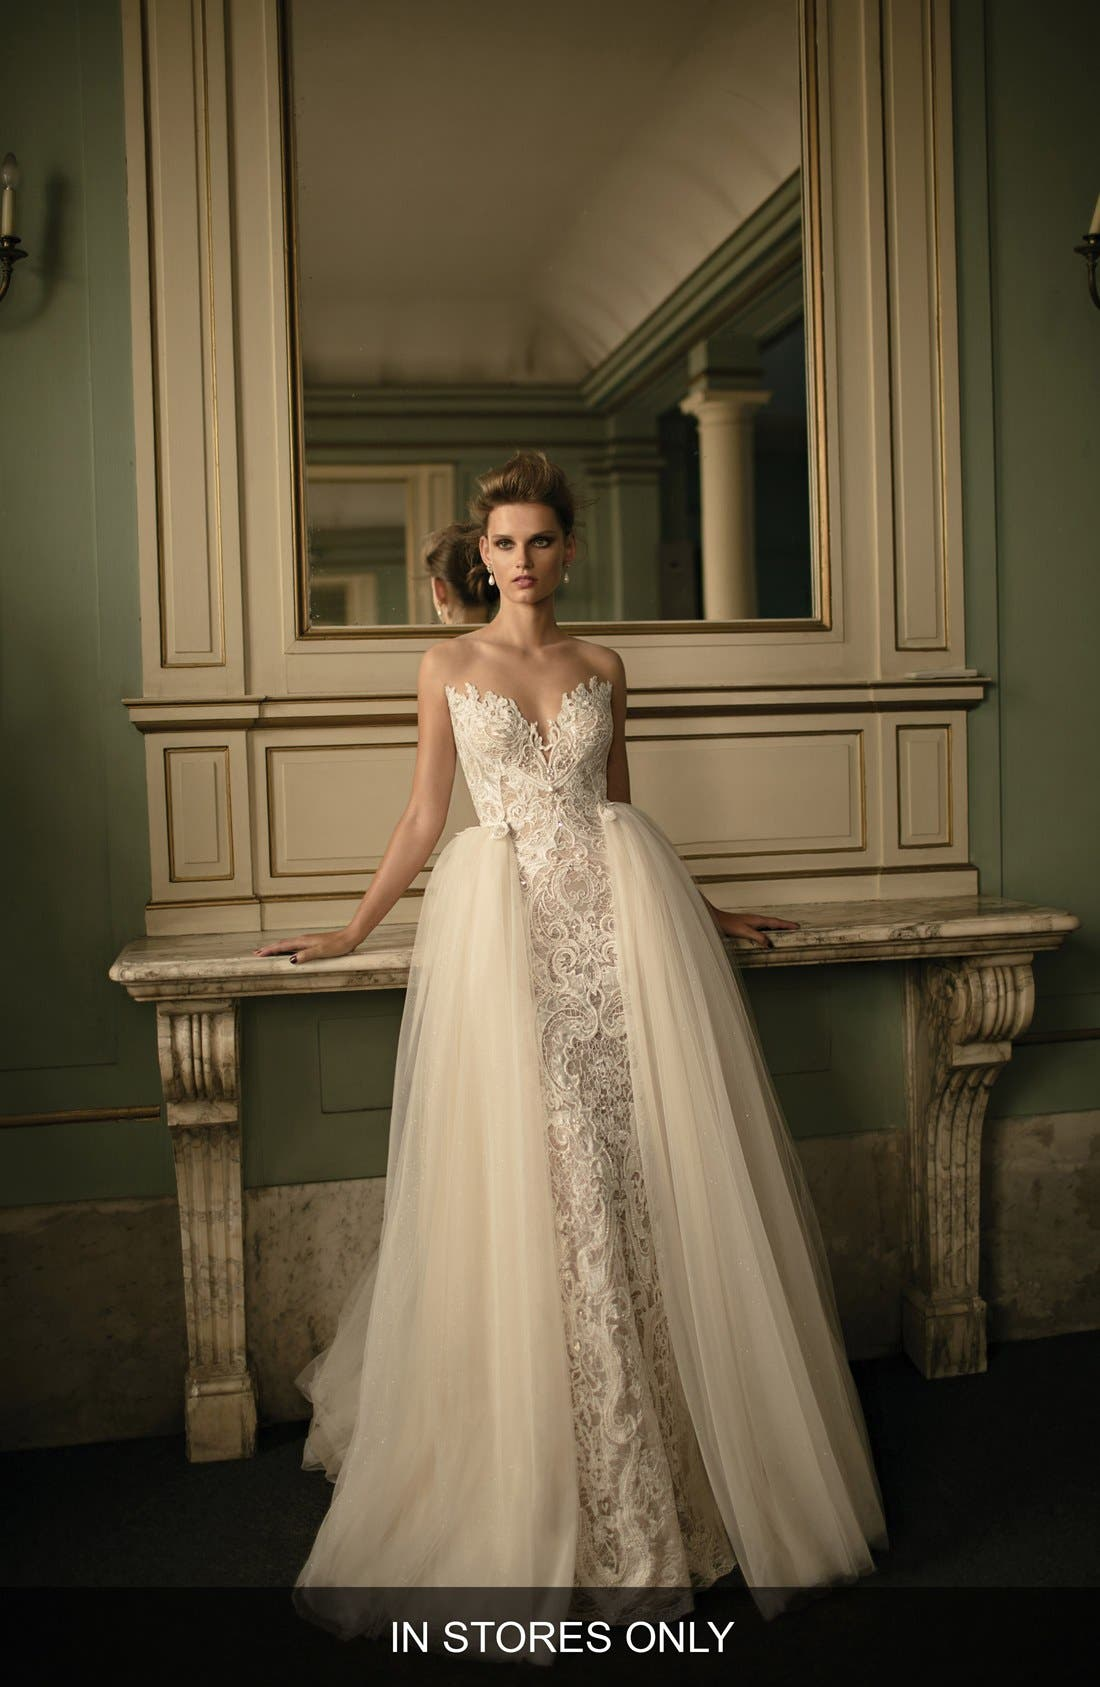 Beaded Lace & Tulle Ballgown,                             Main thumbnail 1, color,                             900